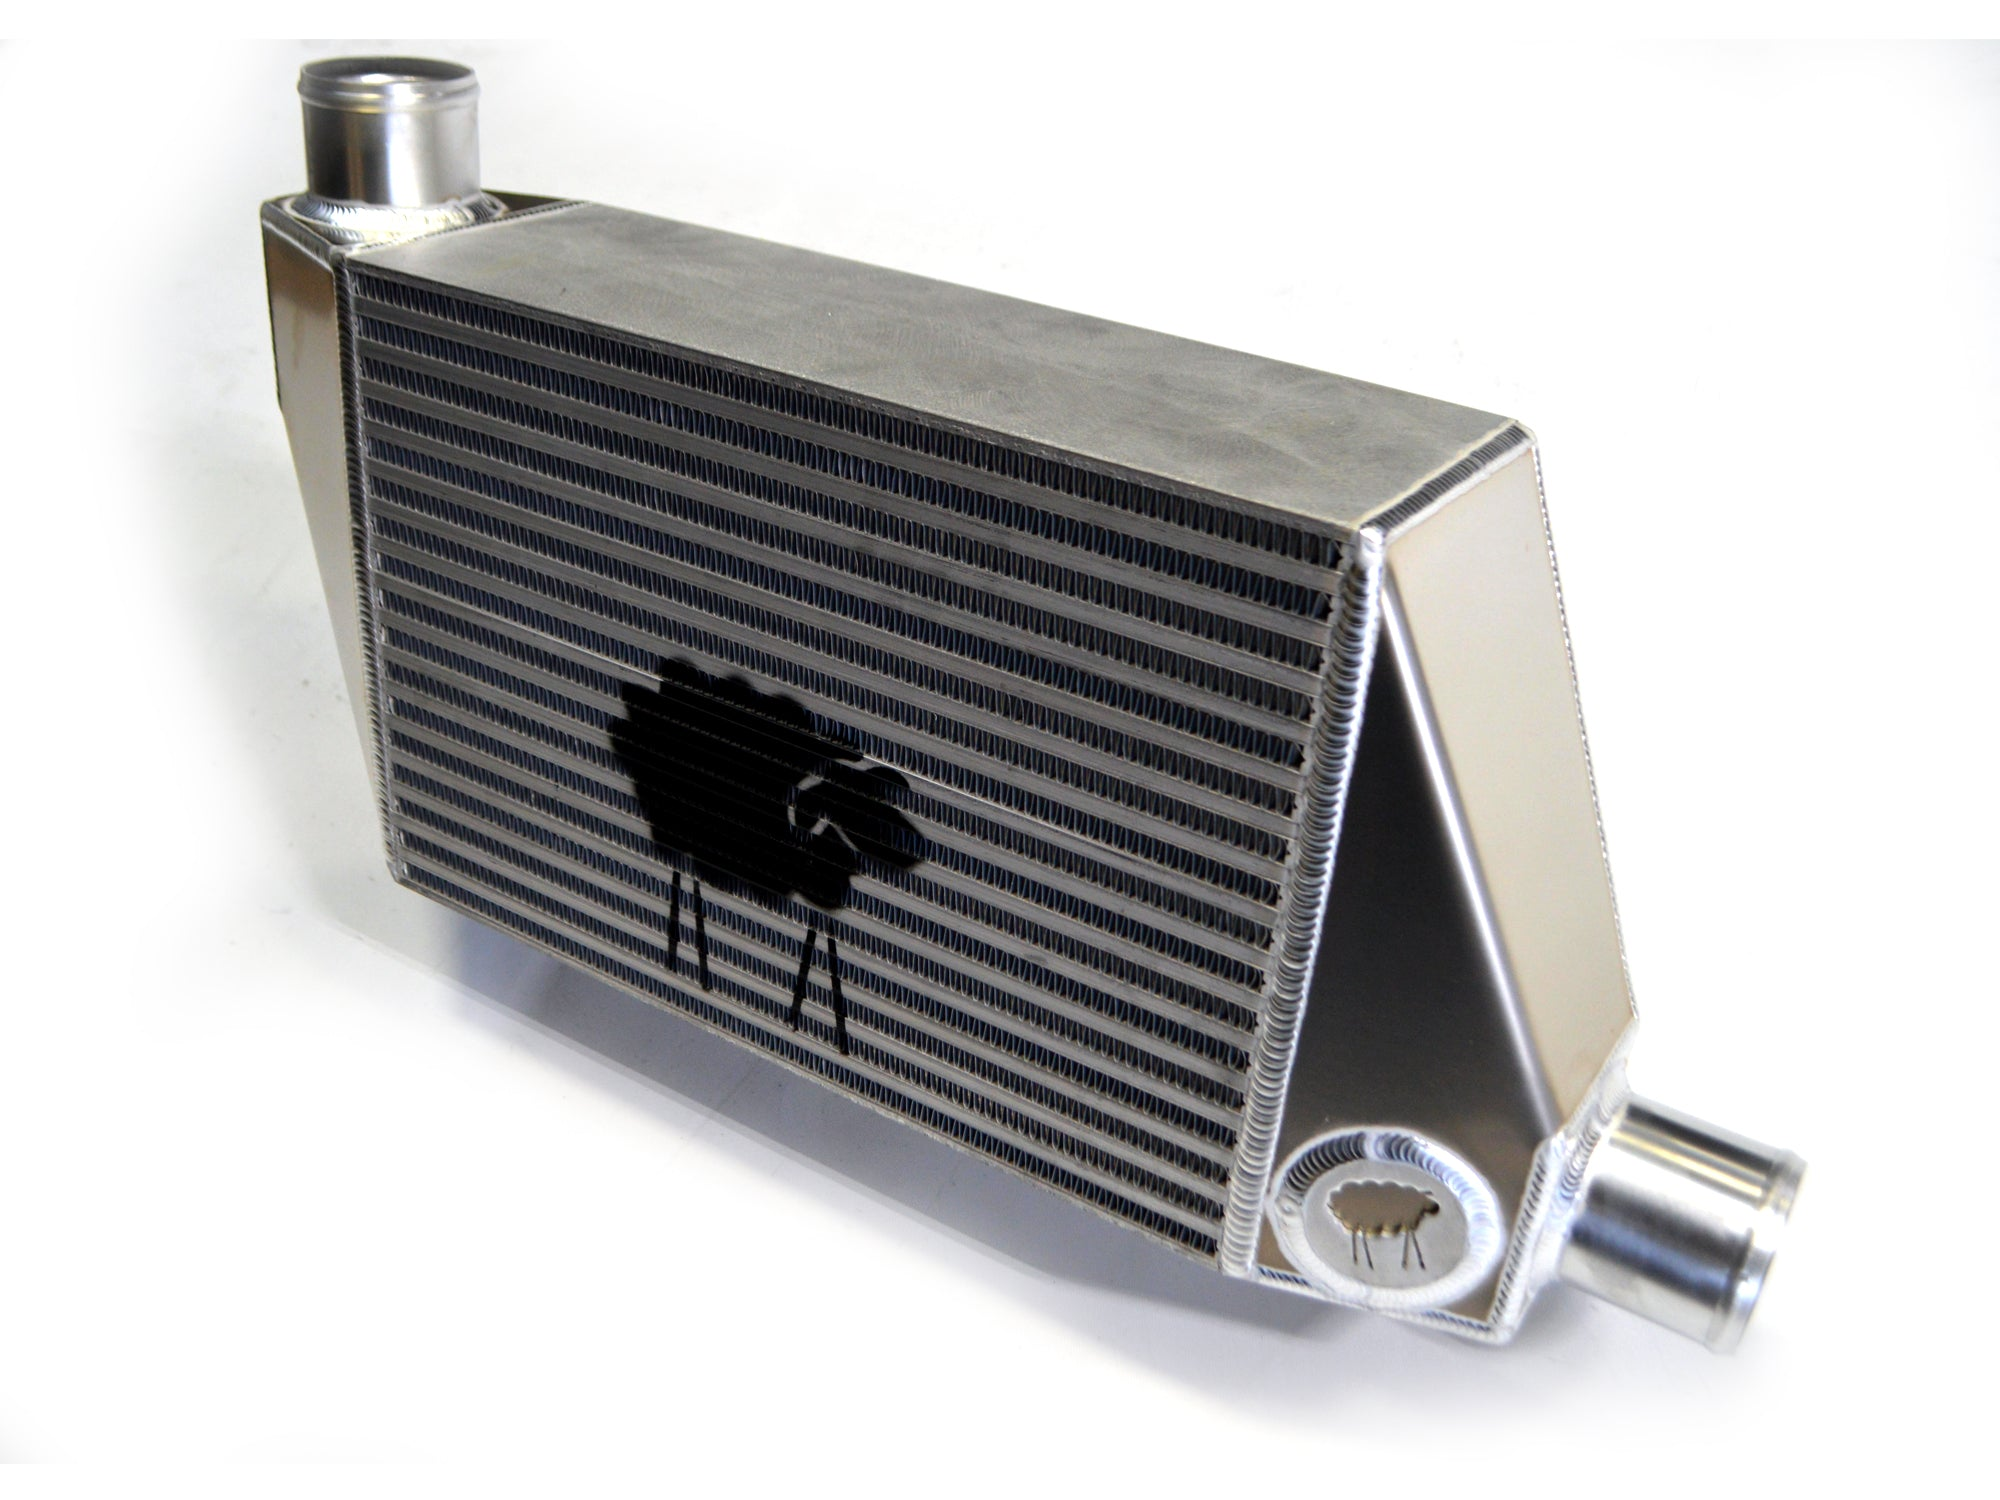 Sheepey Race - Mitsubishi Evo X Race Intercooler